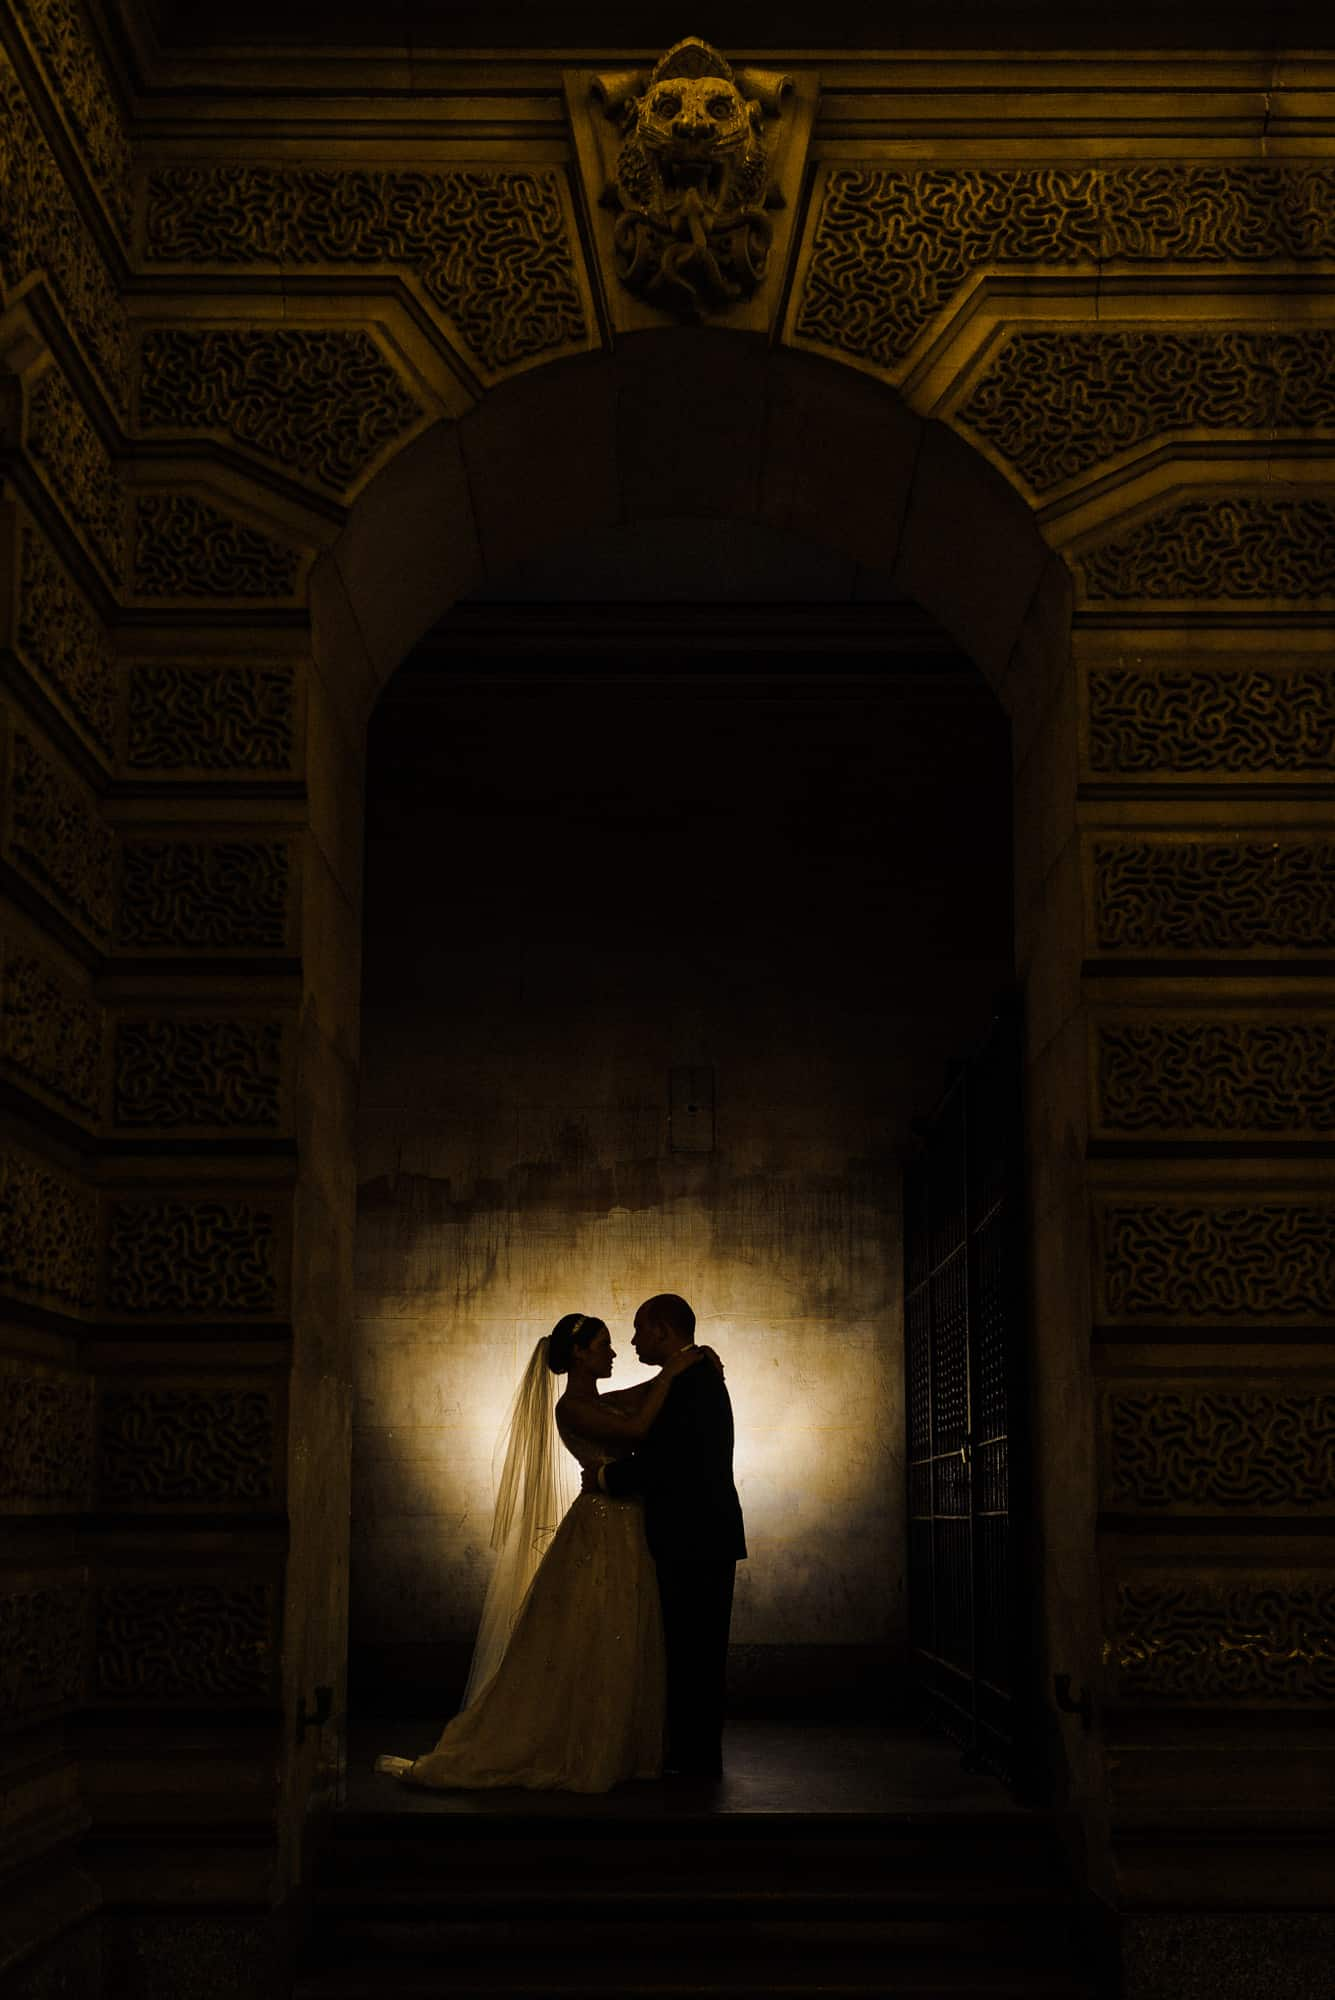 silhoette image of bride and groom in epic wedding shot